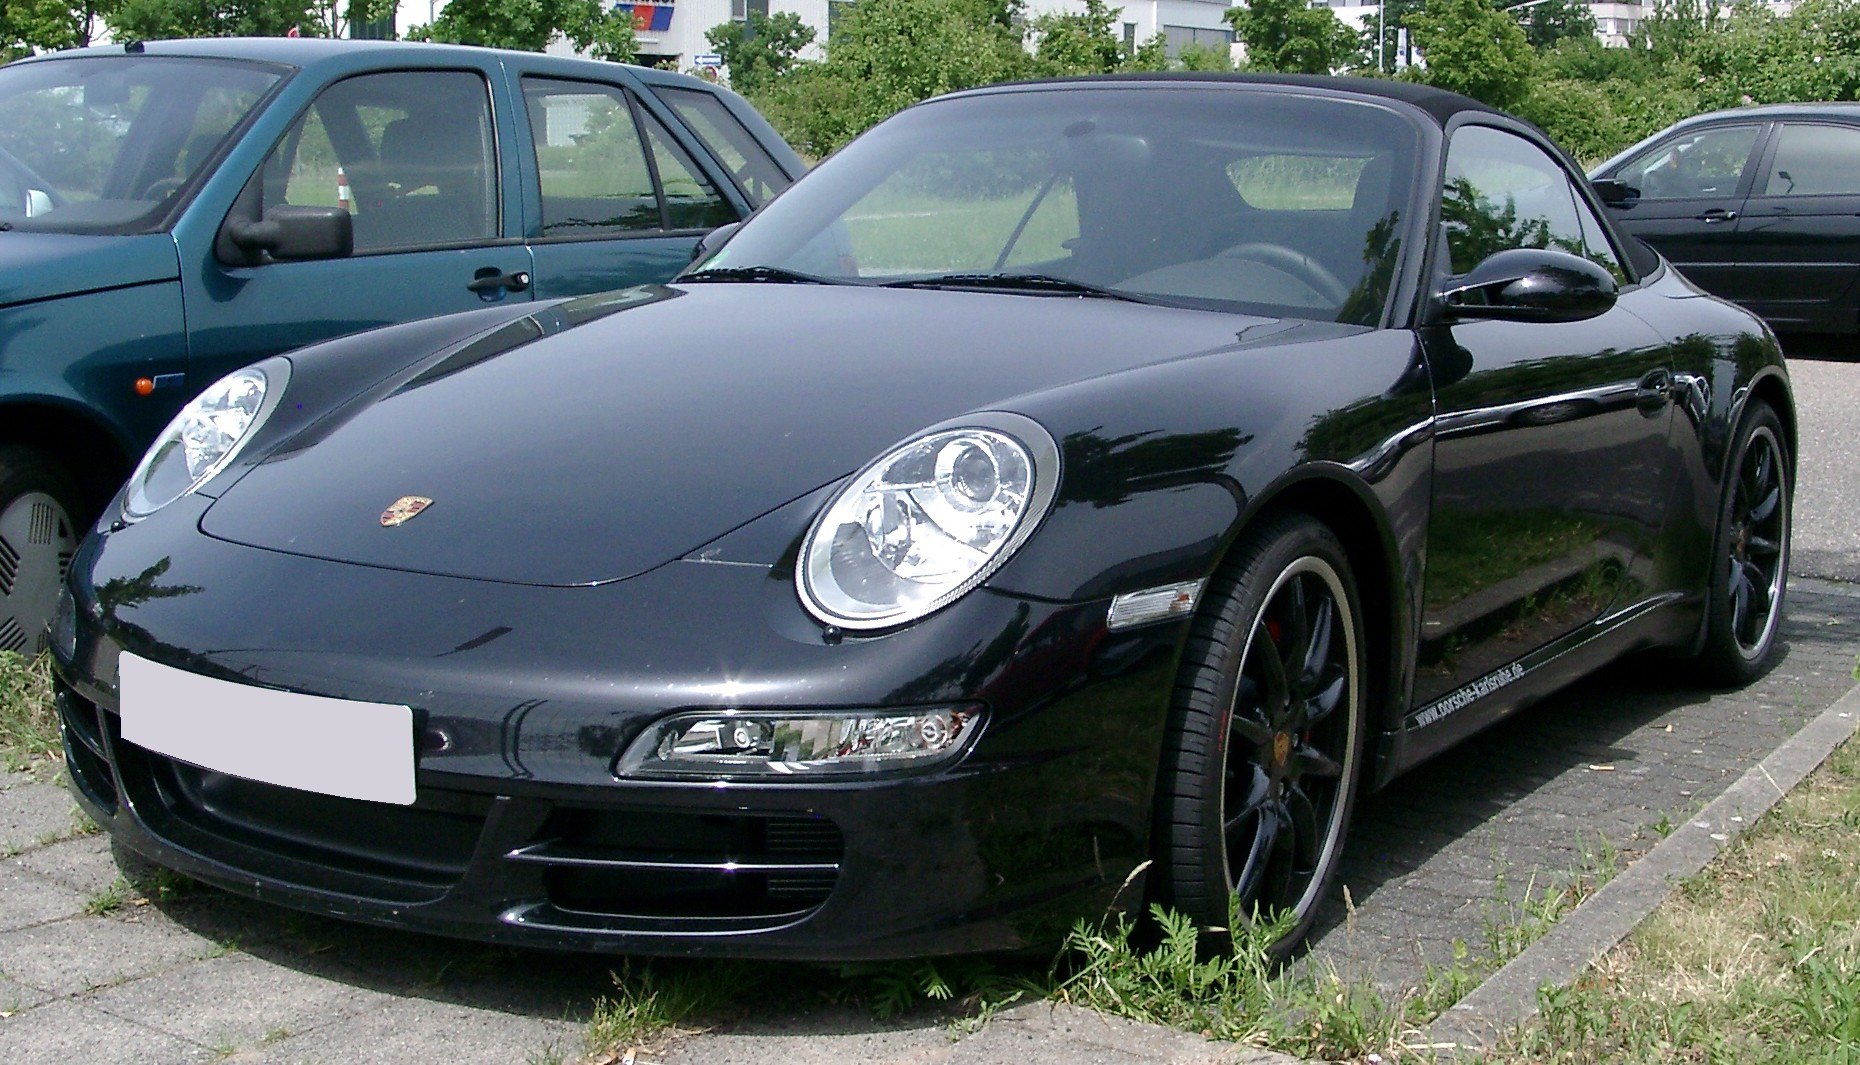 file porsche 911 carrera s cabrio front wikimedia commons. Black Bedroom Furniture Sets. Home Design Ideas